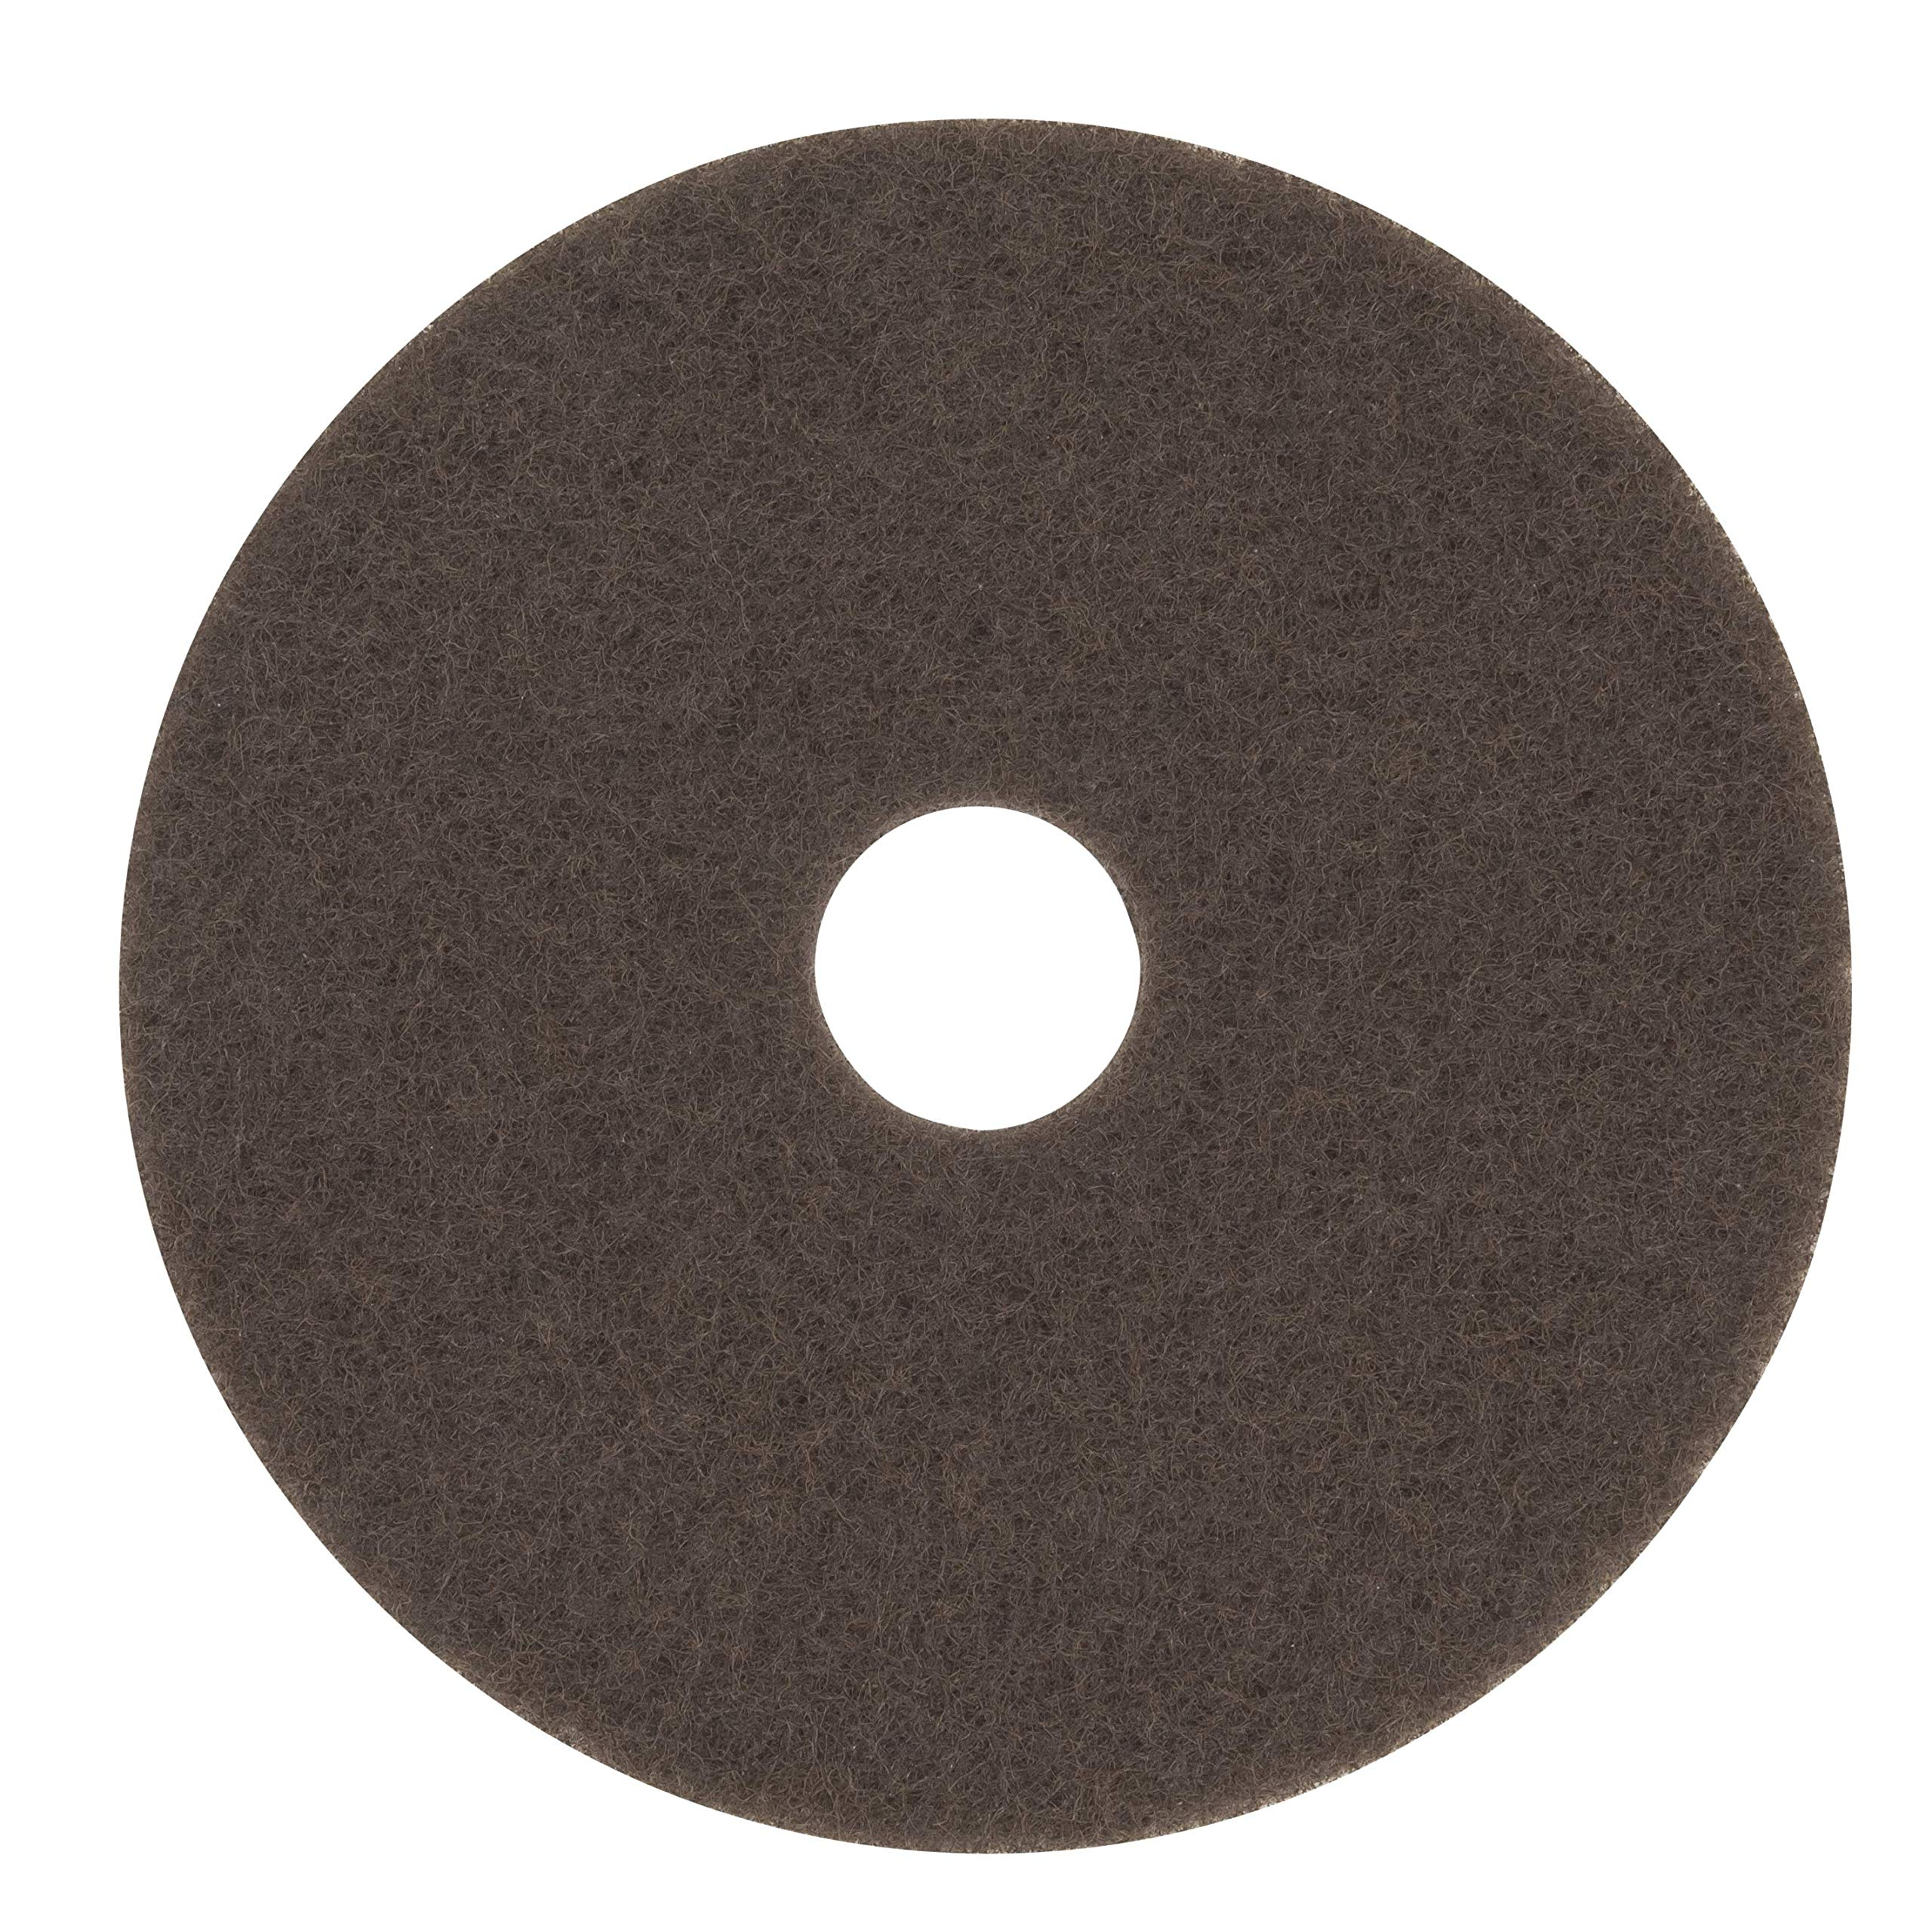 3M 7100 Brown 20-Inch Stripper Pad (5 per Case) by 3M